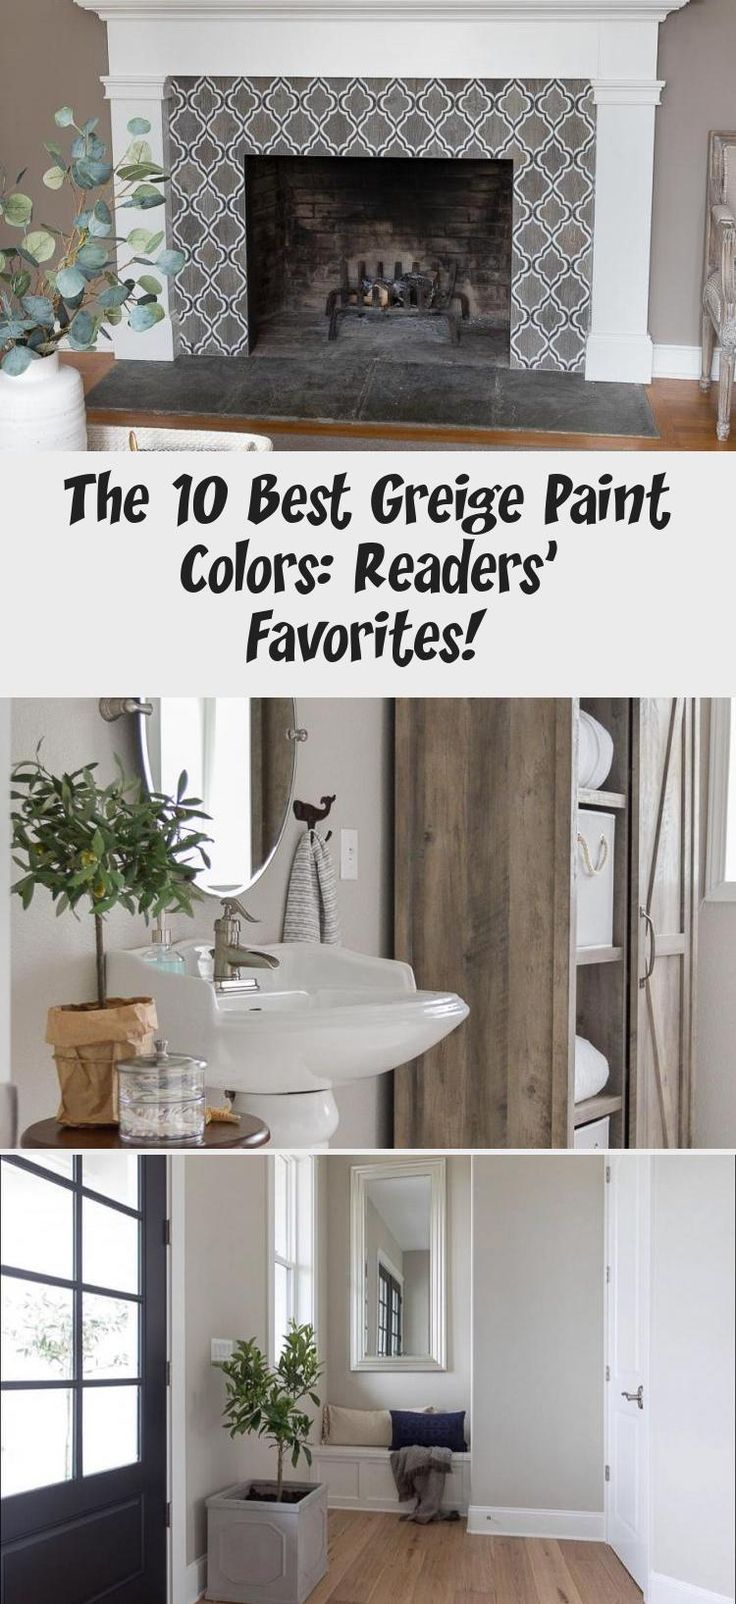 the 10 best greige paint colors readers favorites in on 10 most popular paint colors id=63980